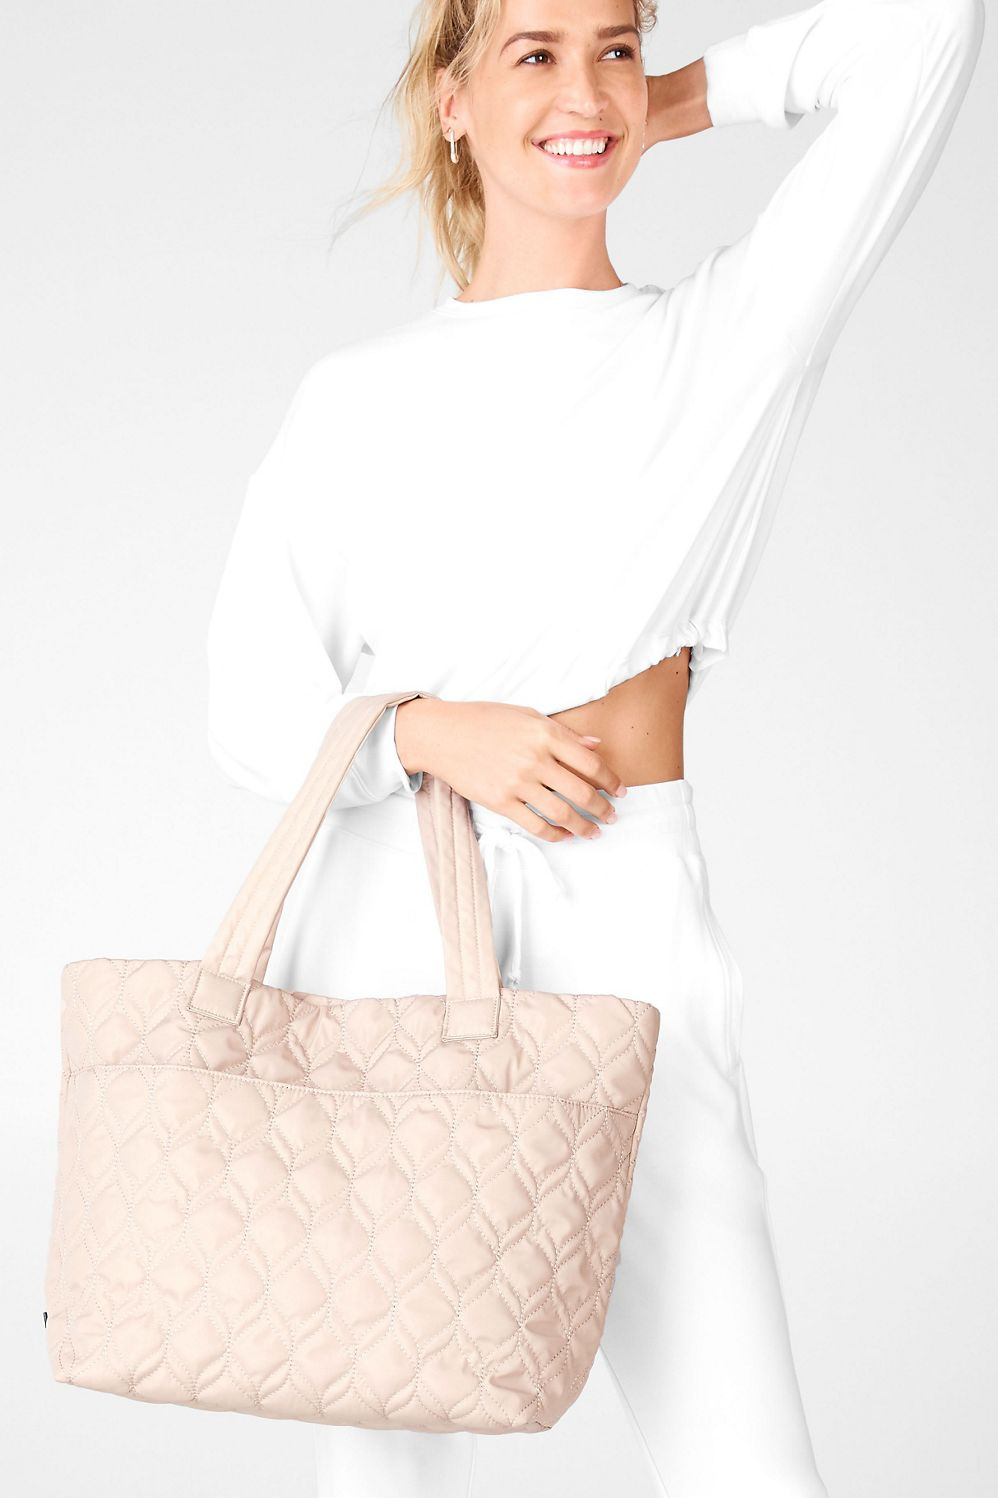 Pale pink/nude quilted tote from Fabletics.